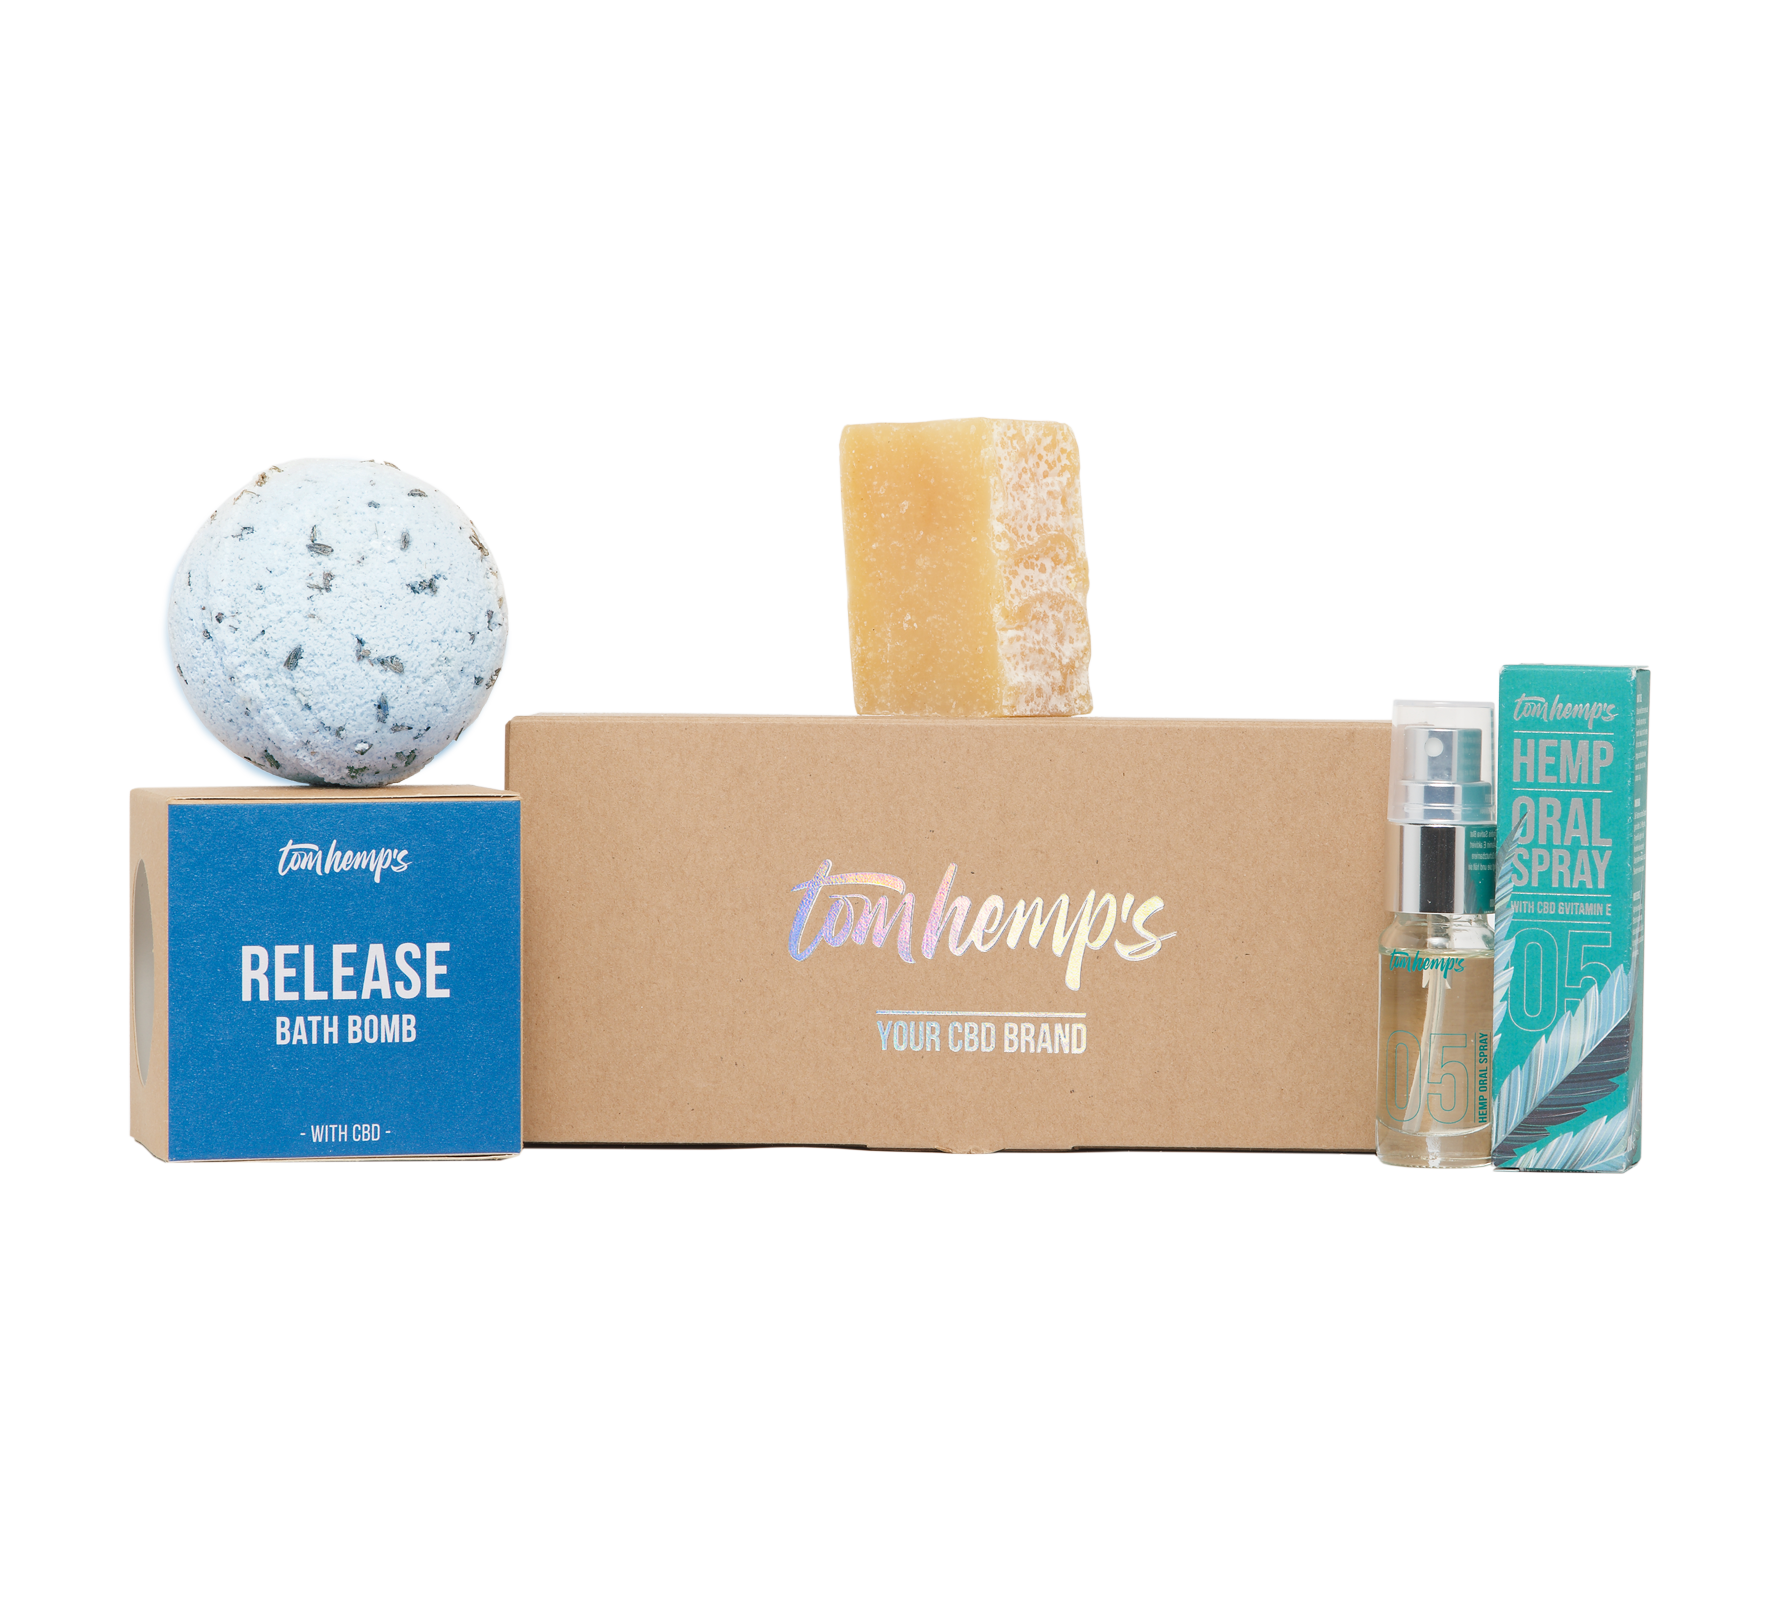 Tom_Hemps_product_giftset_wellness_h